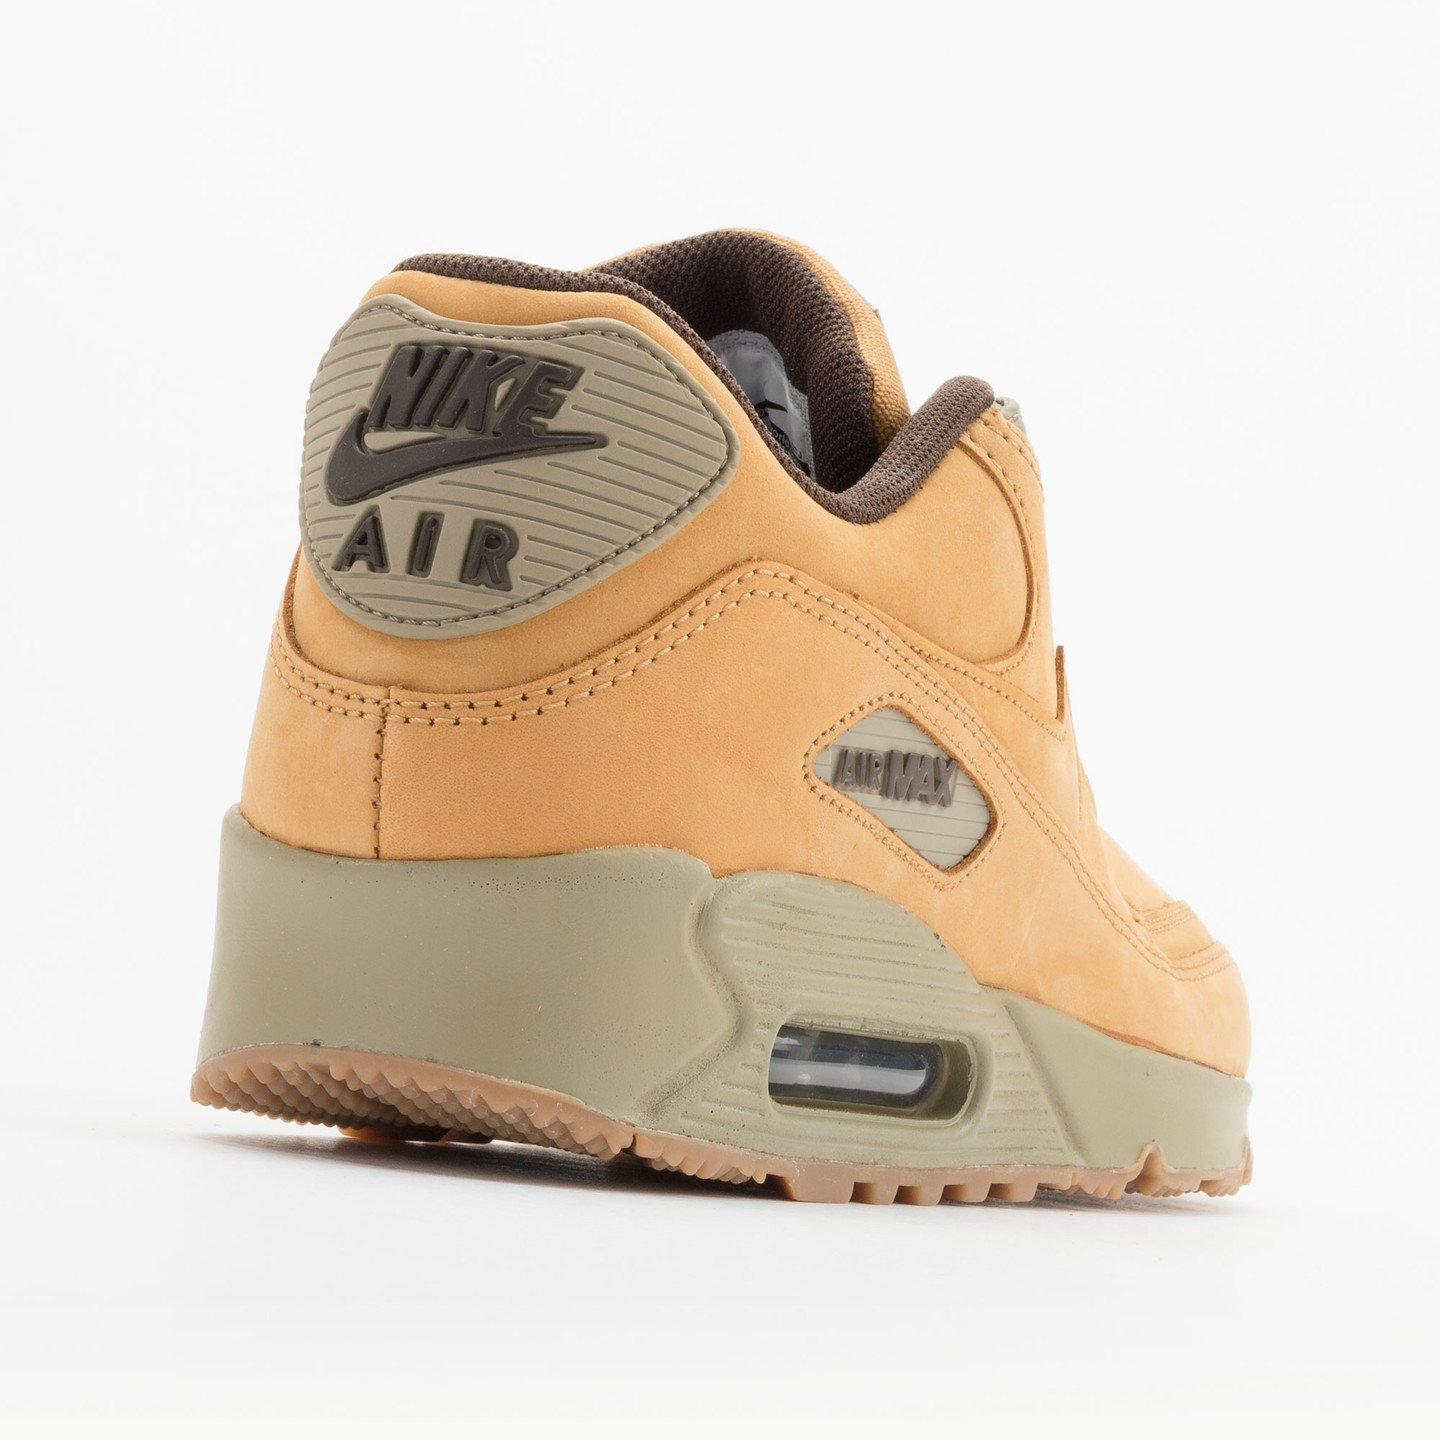 Nike Air Max 90 Winter Premium Bronze / Baroque Brown 683282-700-44